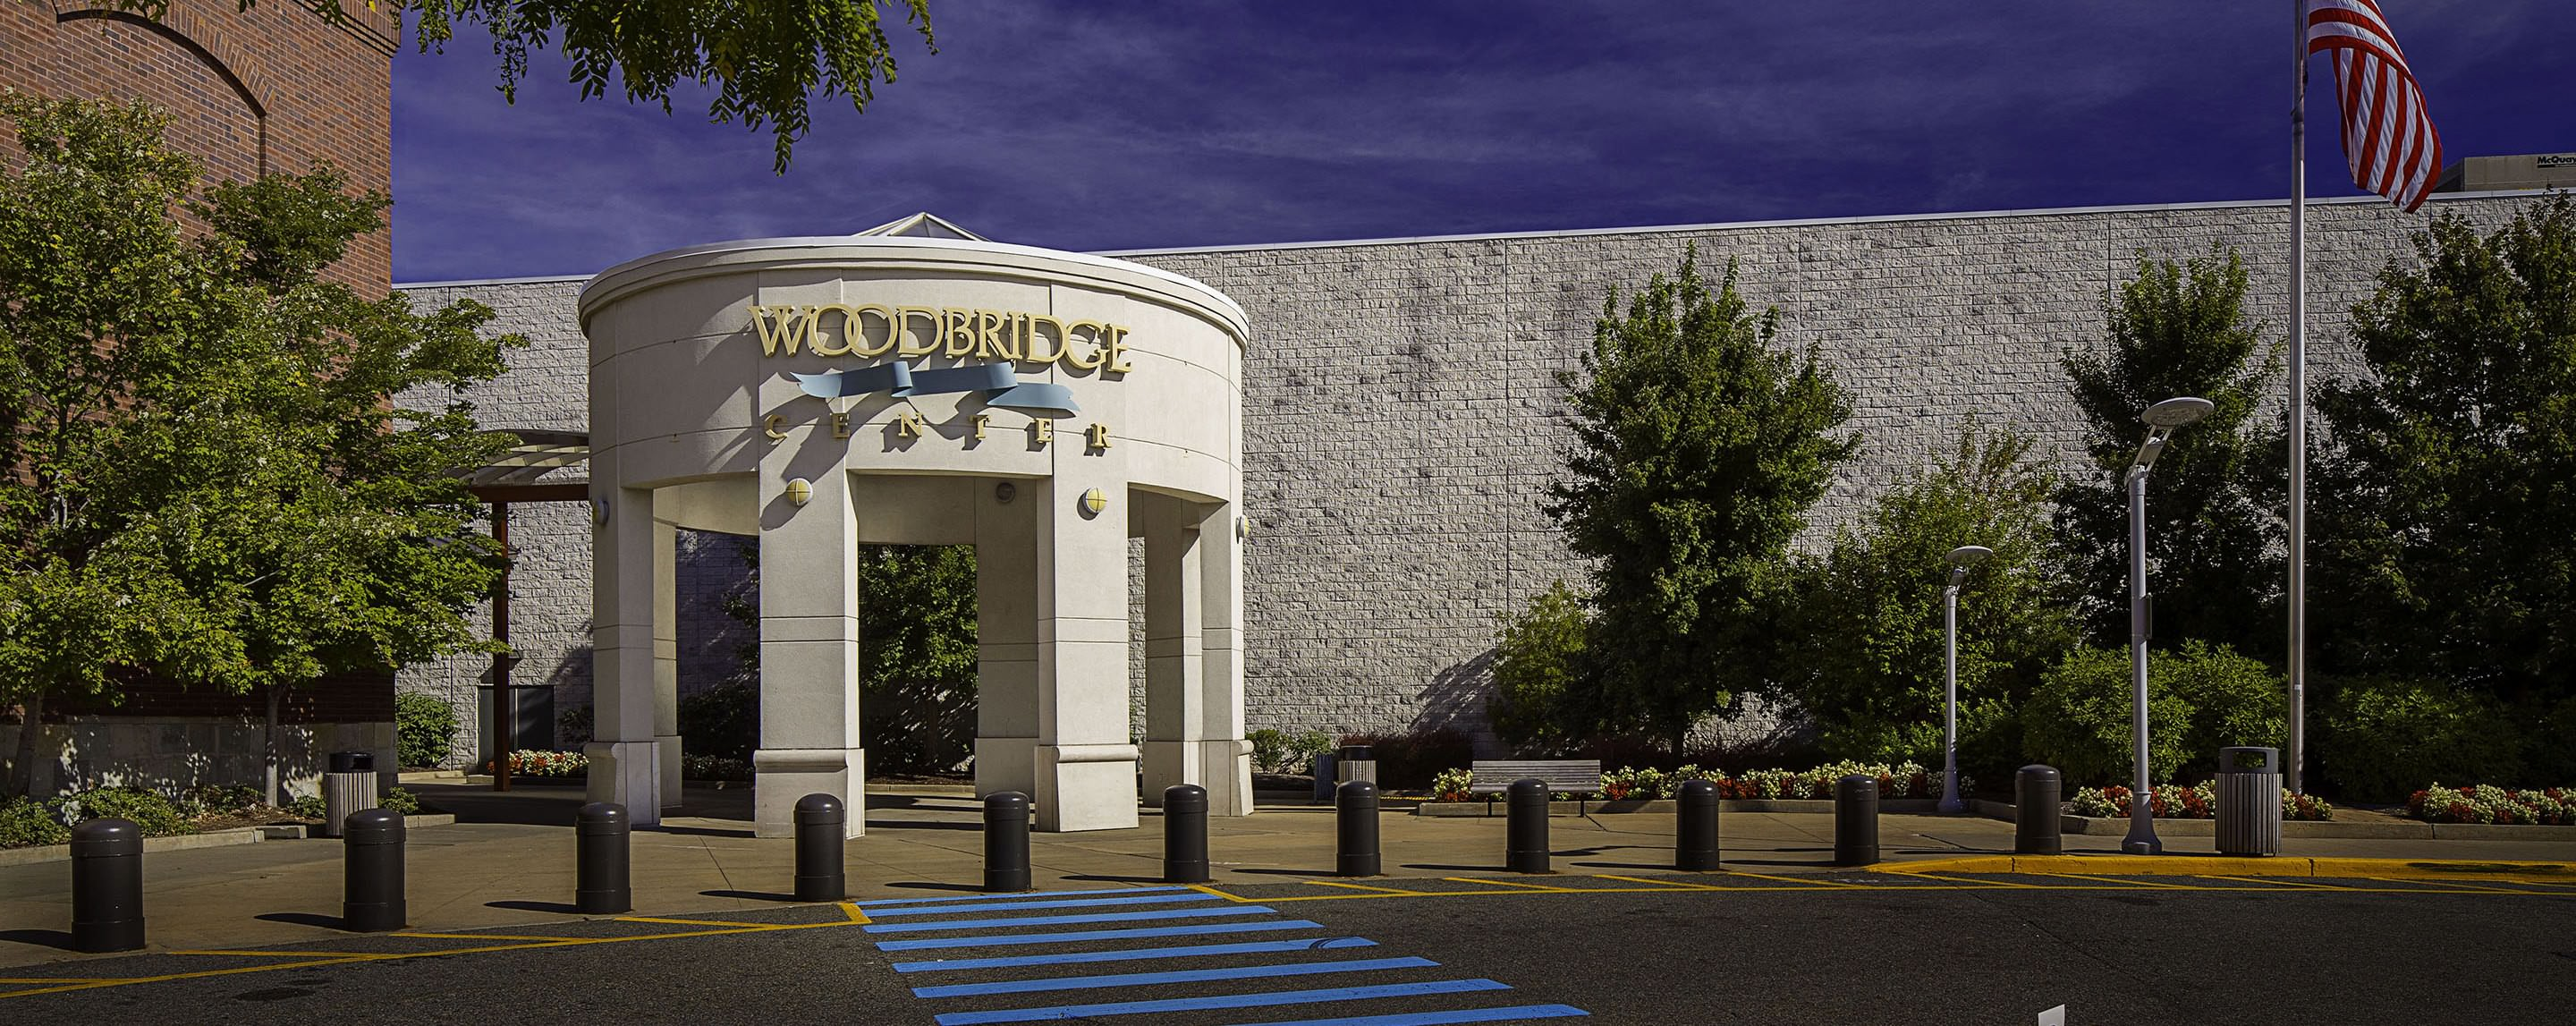 "A large sign reads ""Woodbridge Center."" It stands in front of a large white building."